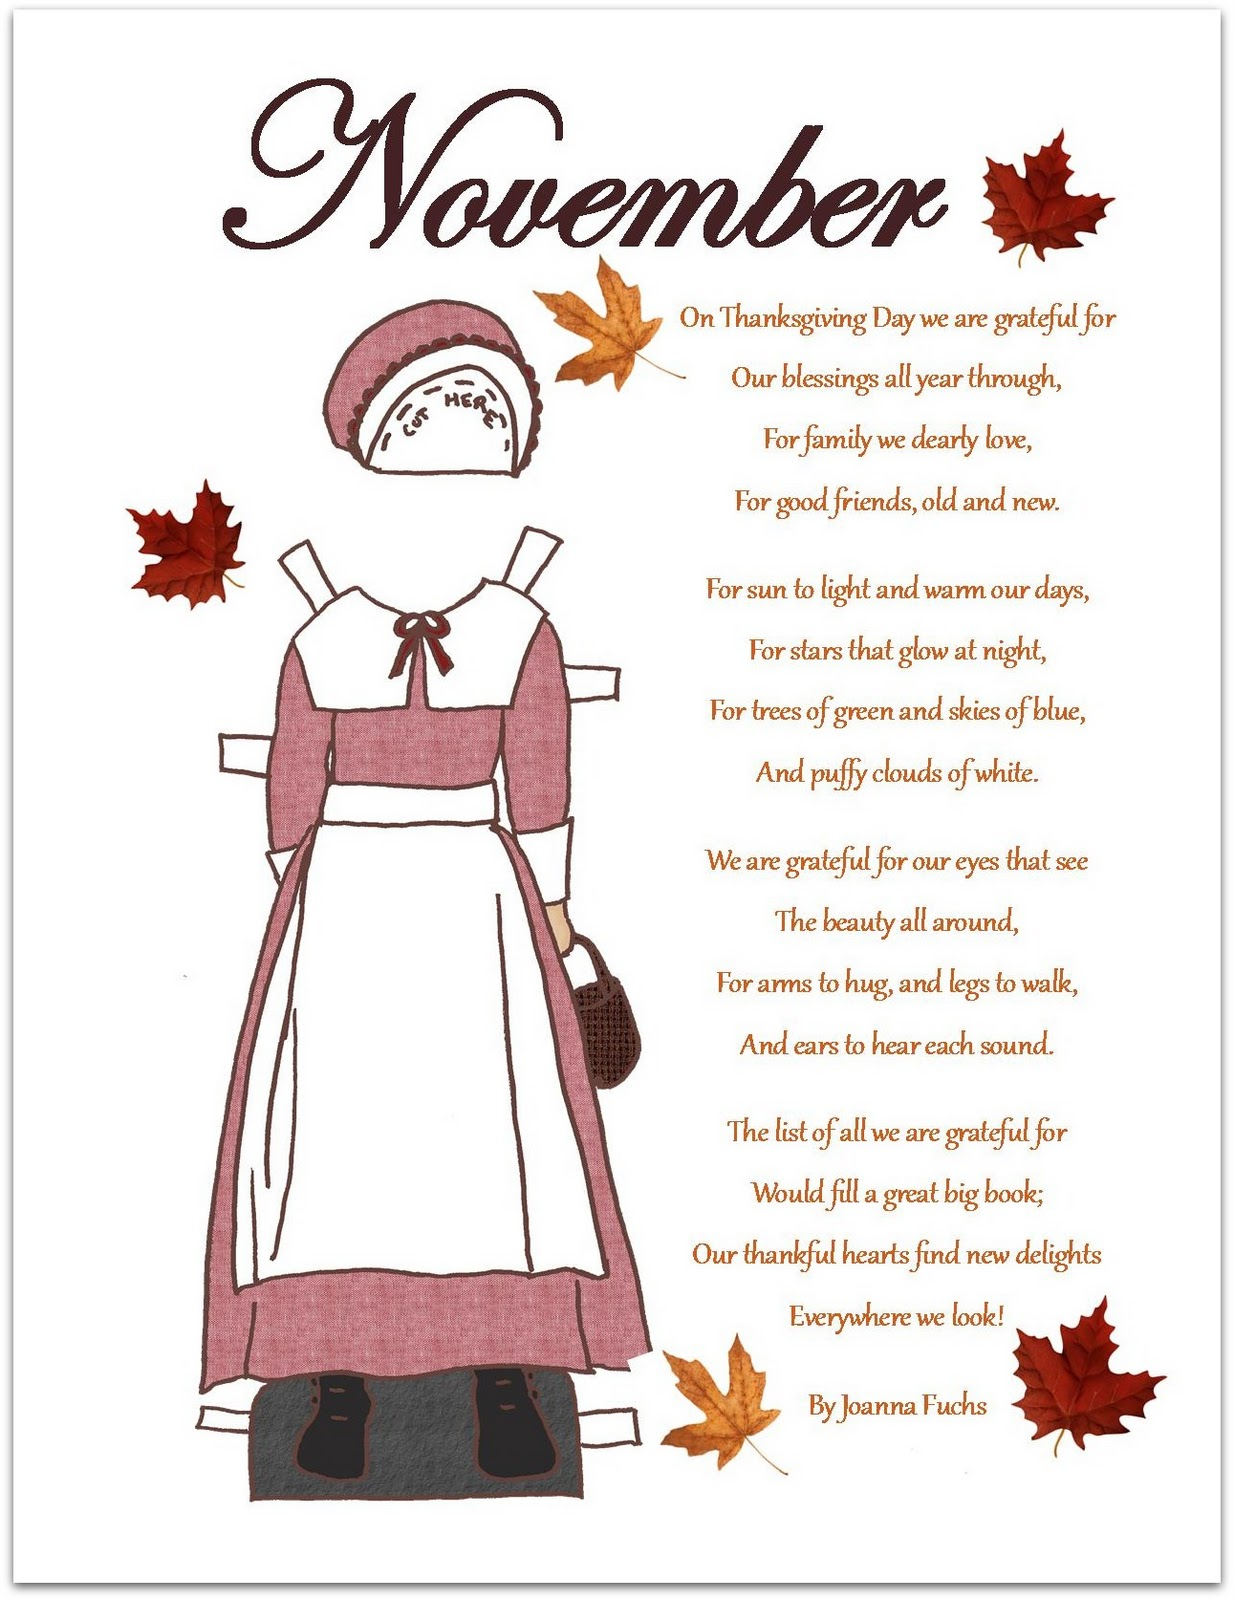 november poem analysis Get an answer for 'does the poem my november guest by robert frost suggest that sorrow can make people see beauty where they did not see it before my november.